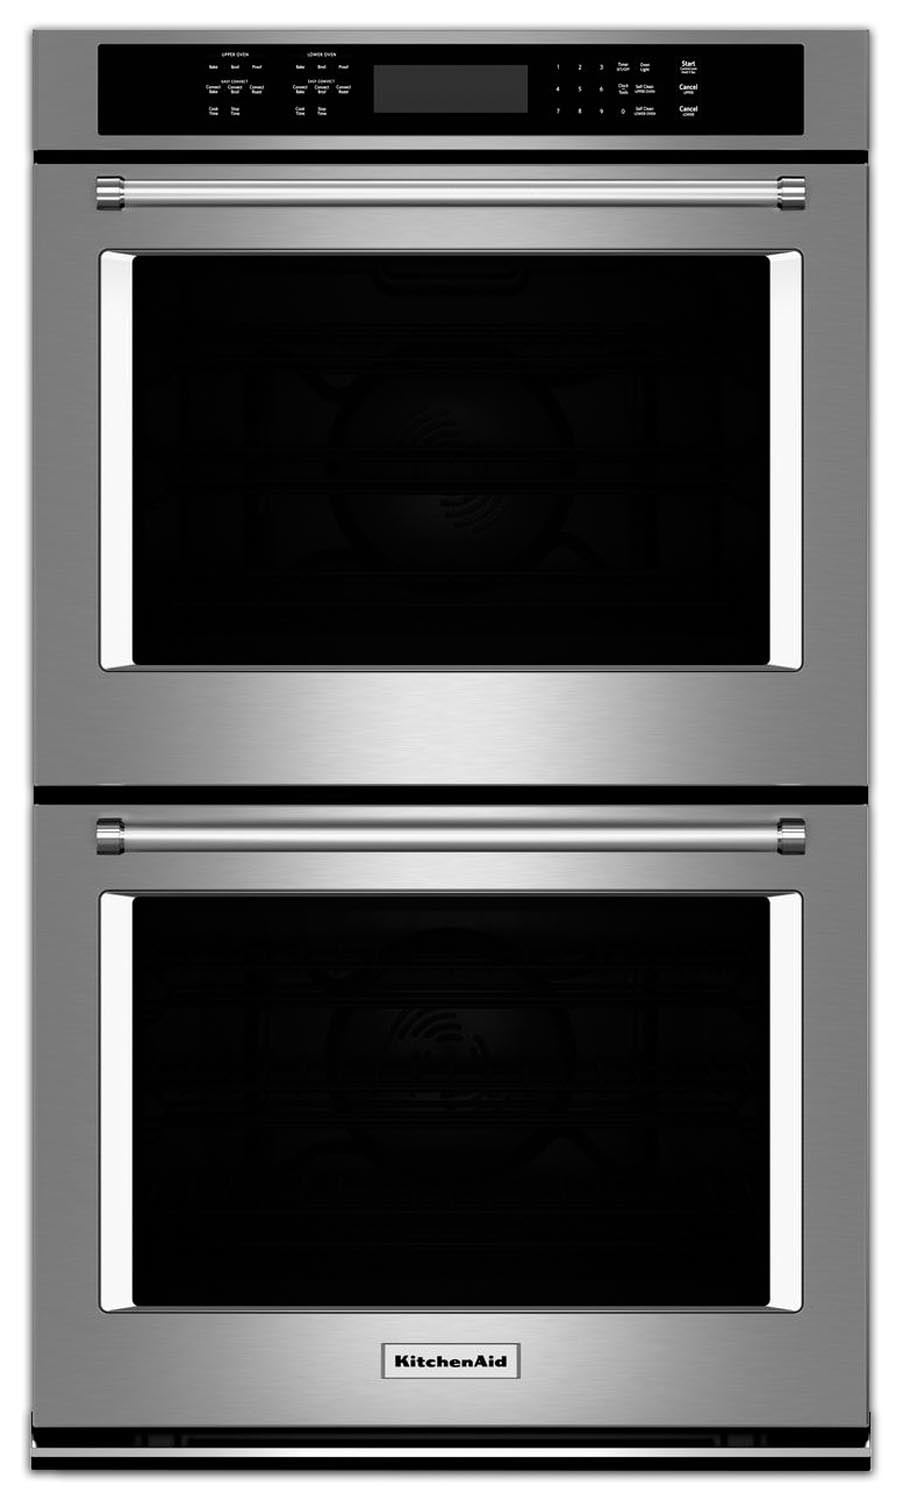 Cooking Products - KitchenAid Stainless Steel Convection Double Wall Oven (8.6 Cu. Ft.) - KODE507ESS